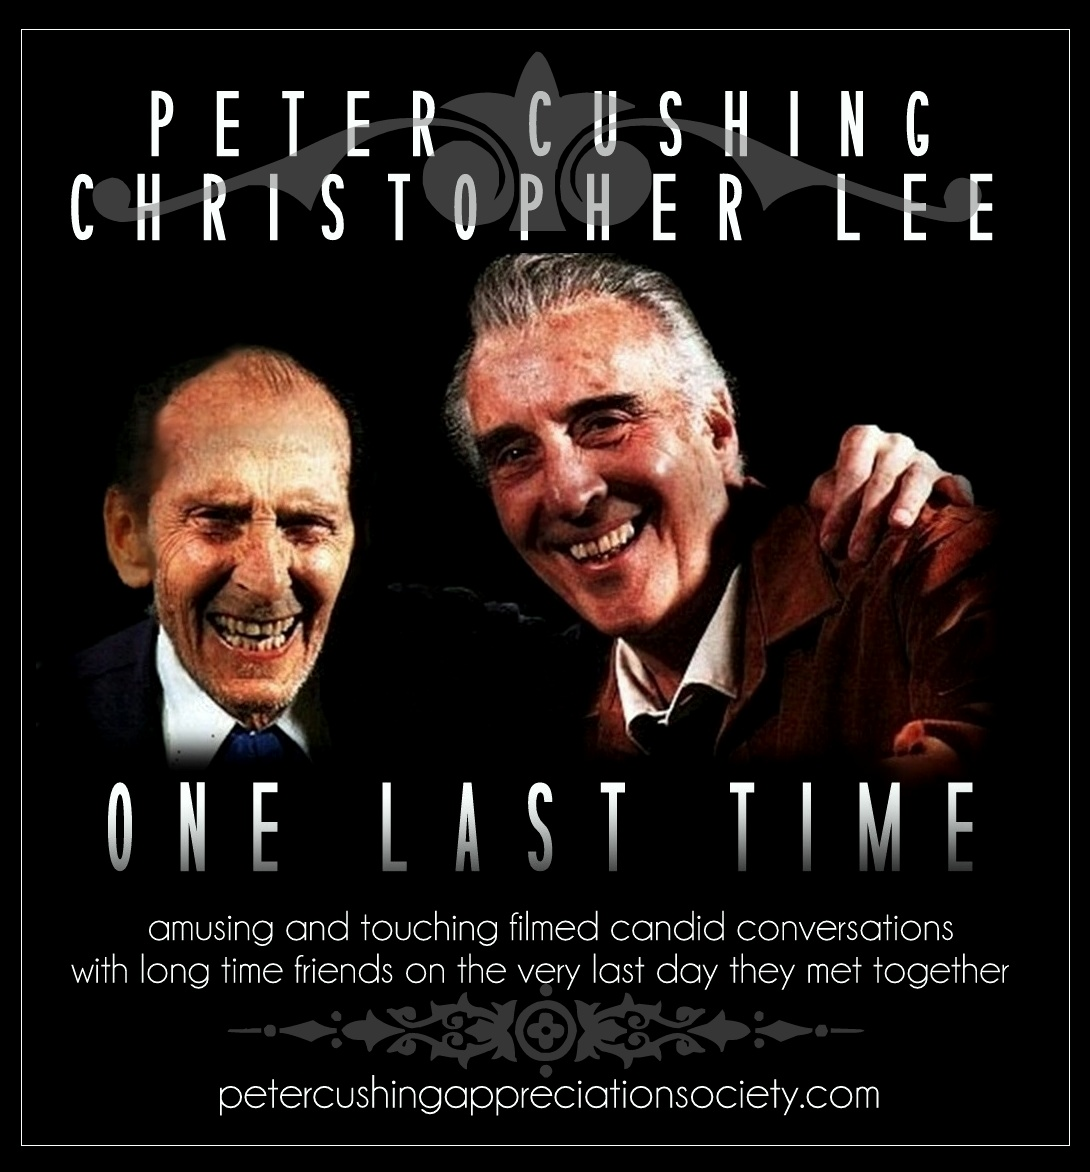 PETER CUSHING AND CHRISTOPHER LEE ONE LAST TIME : COMPLETE SERIES OF CLIPS